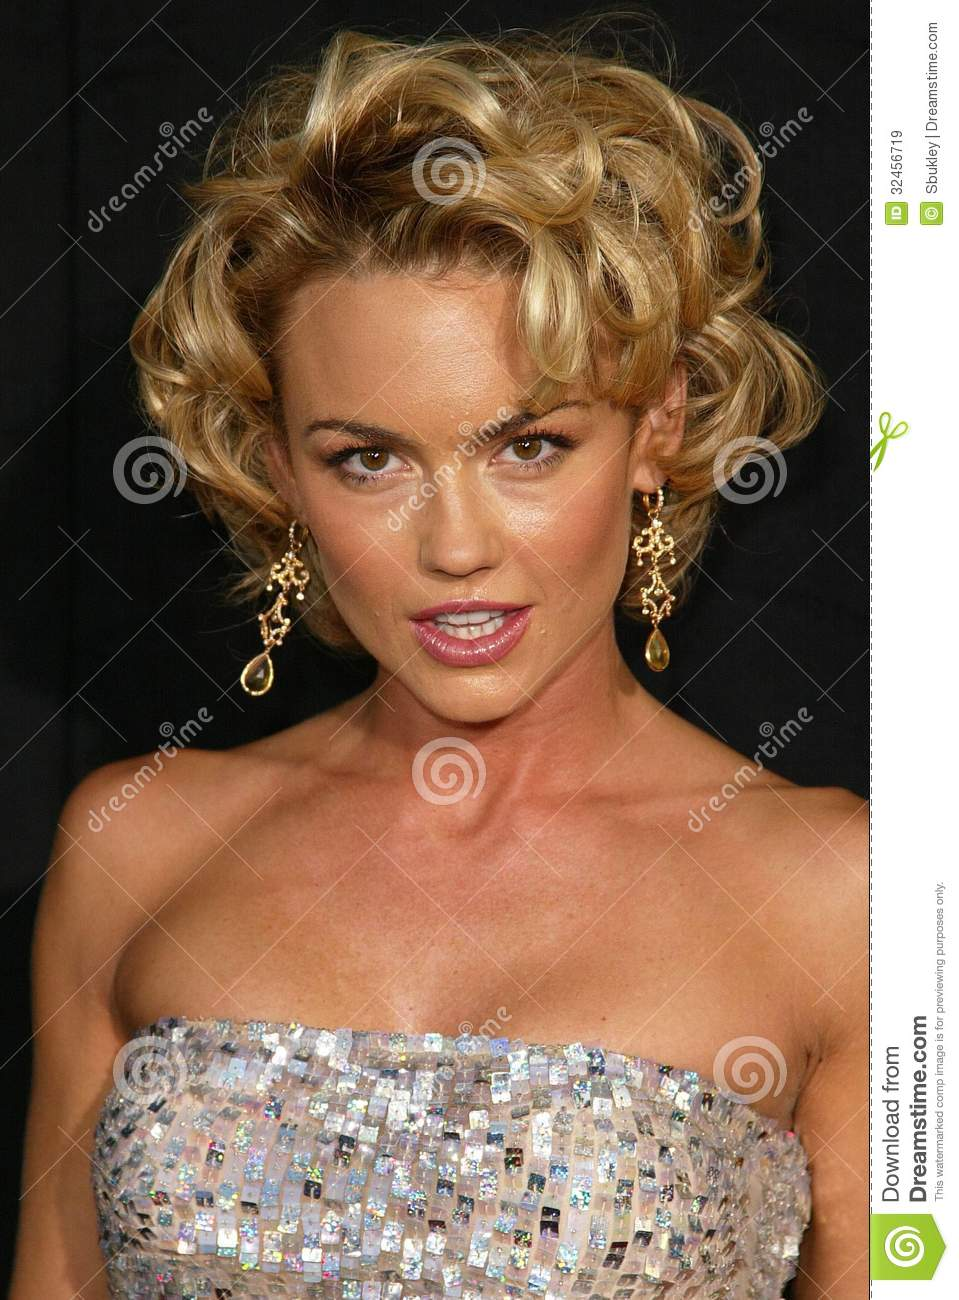 Kelly Carlson Nude Photos 91